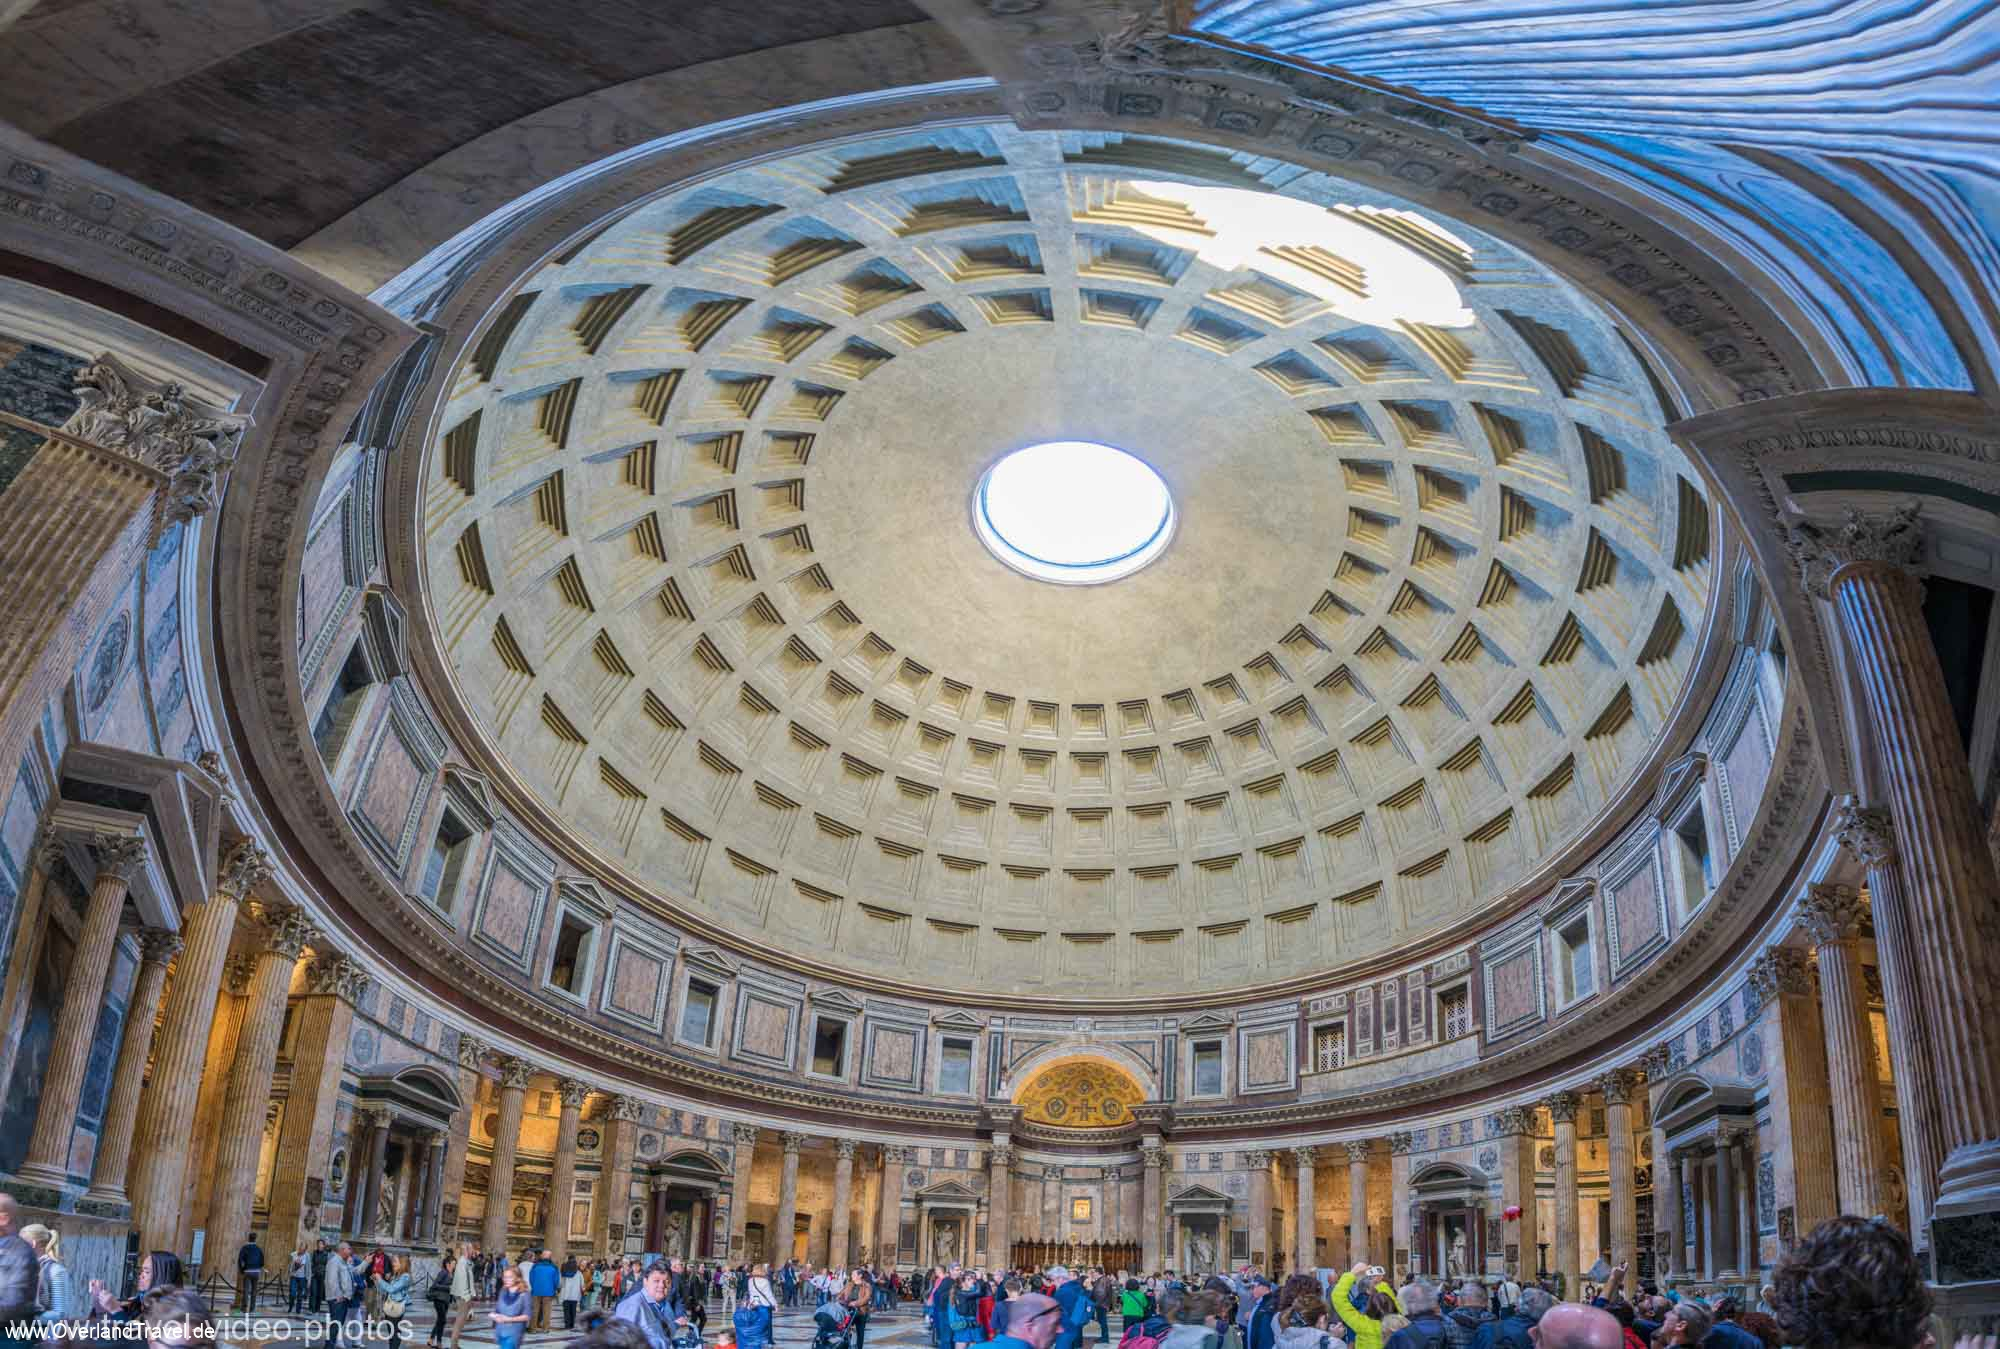 Indoor Pantheon panorama, a stitch of 8 images